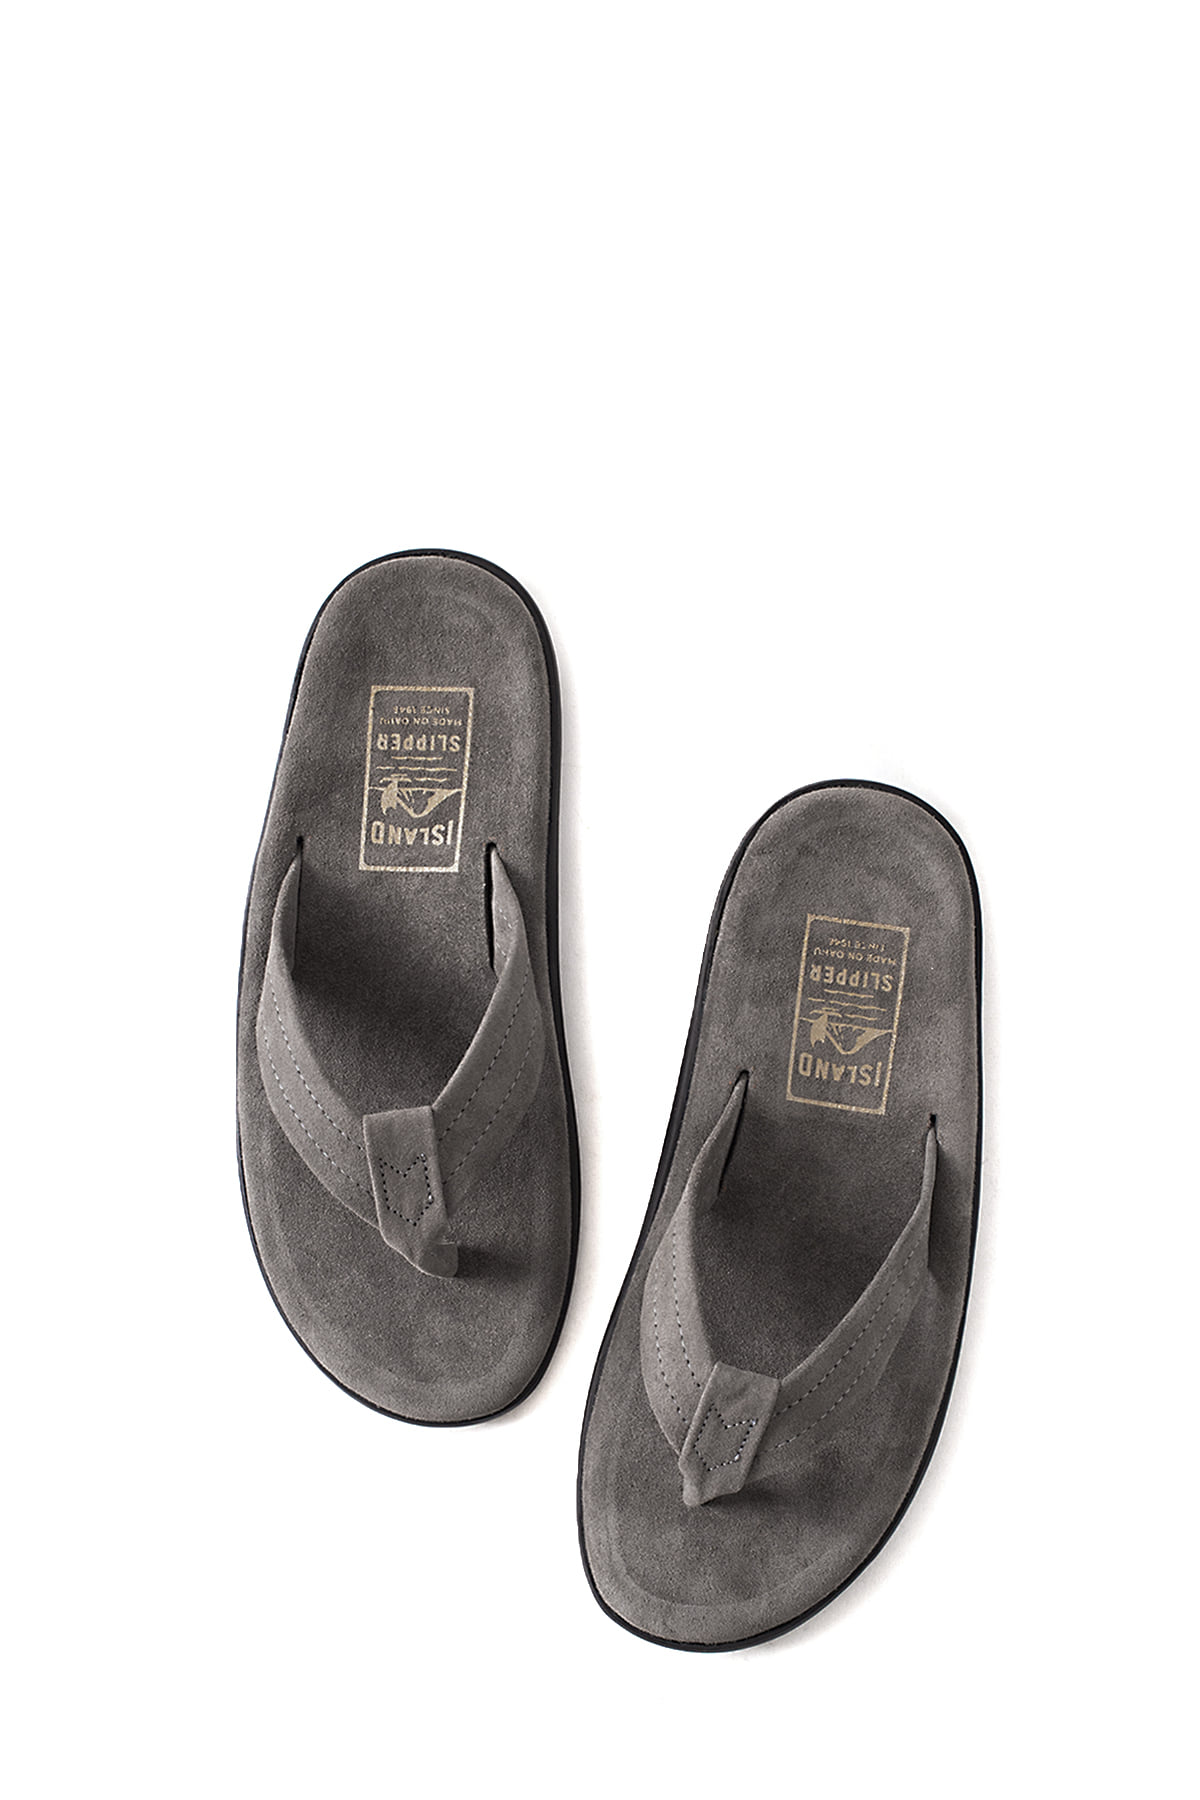 ISLAND SLIPPER : PB203 (Charcoal Suede)